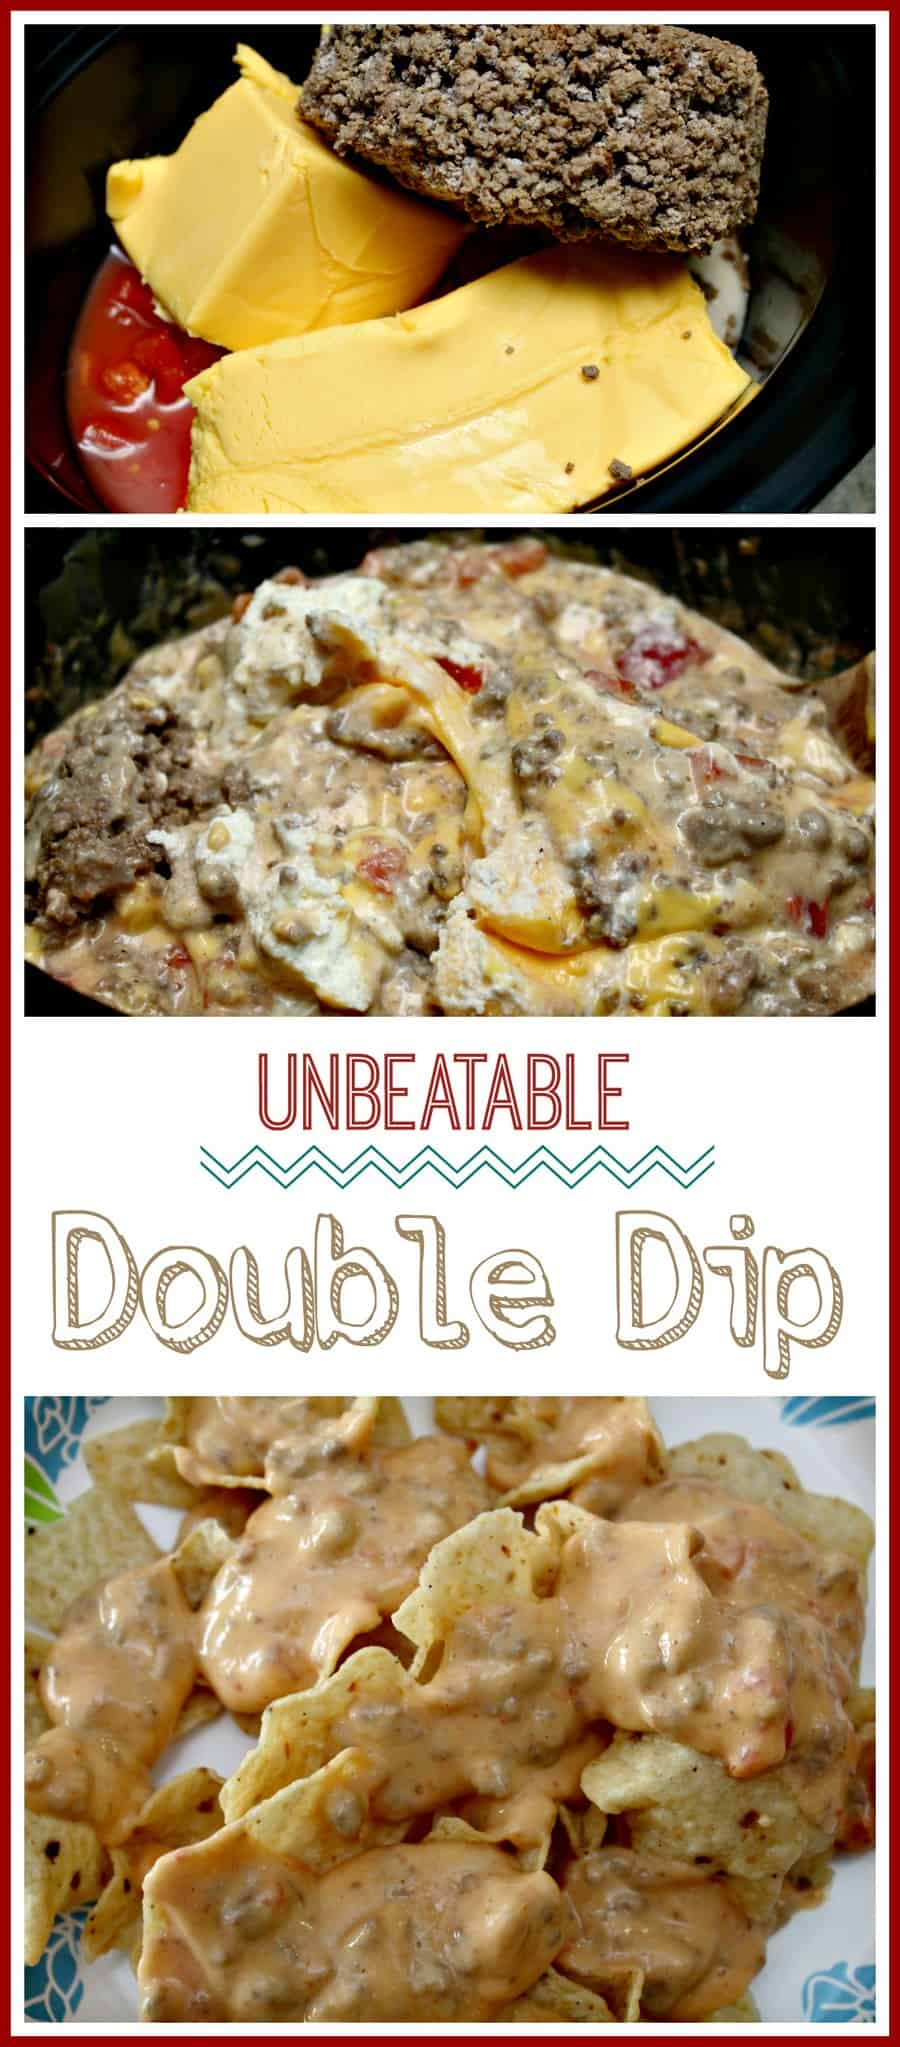 Unbeatable Double Dip { Big Game Party Dip Recipe!}